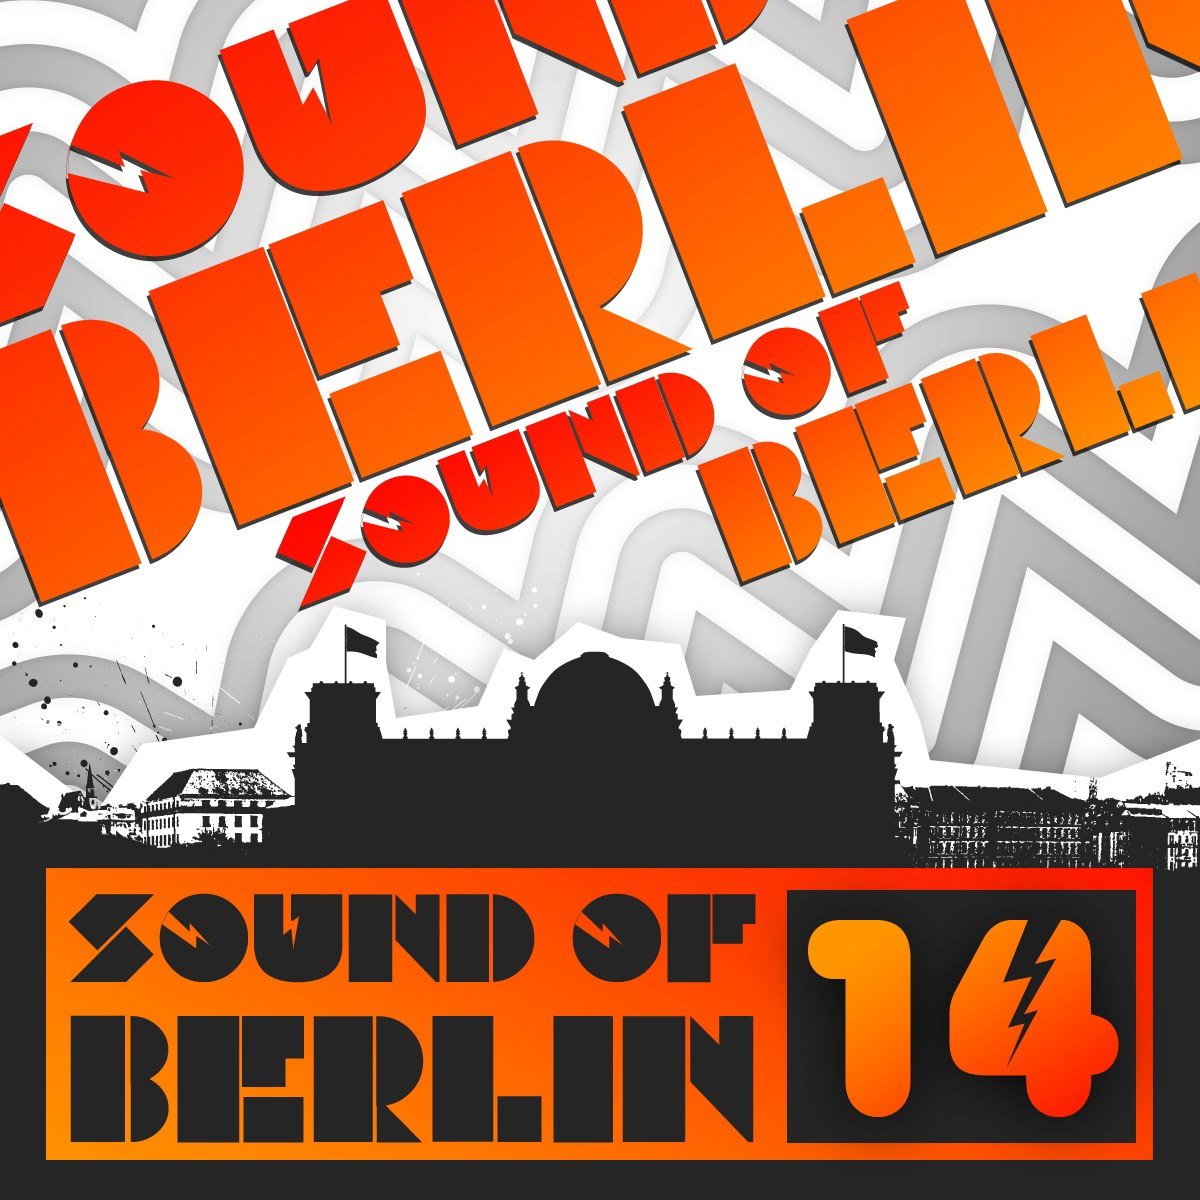 Sound of Berlin Vol. 14